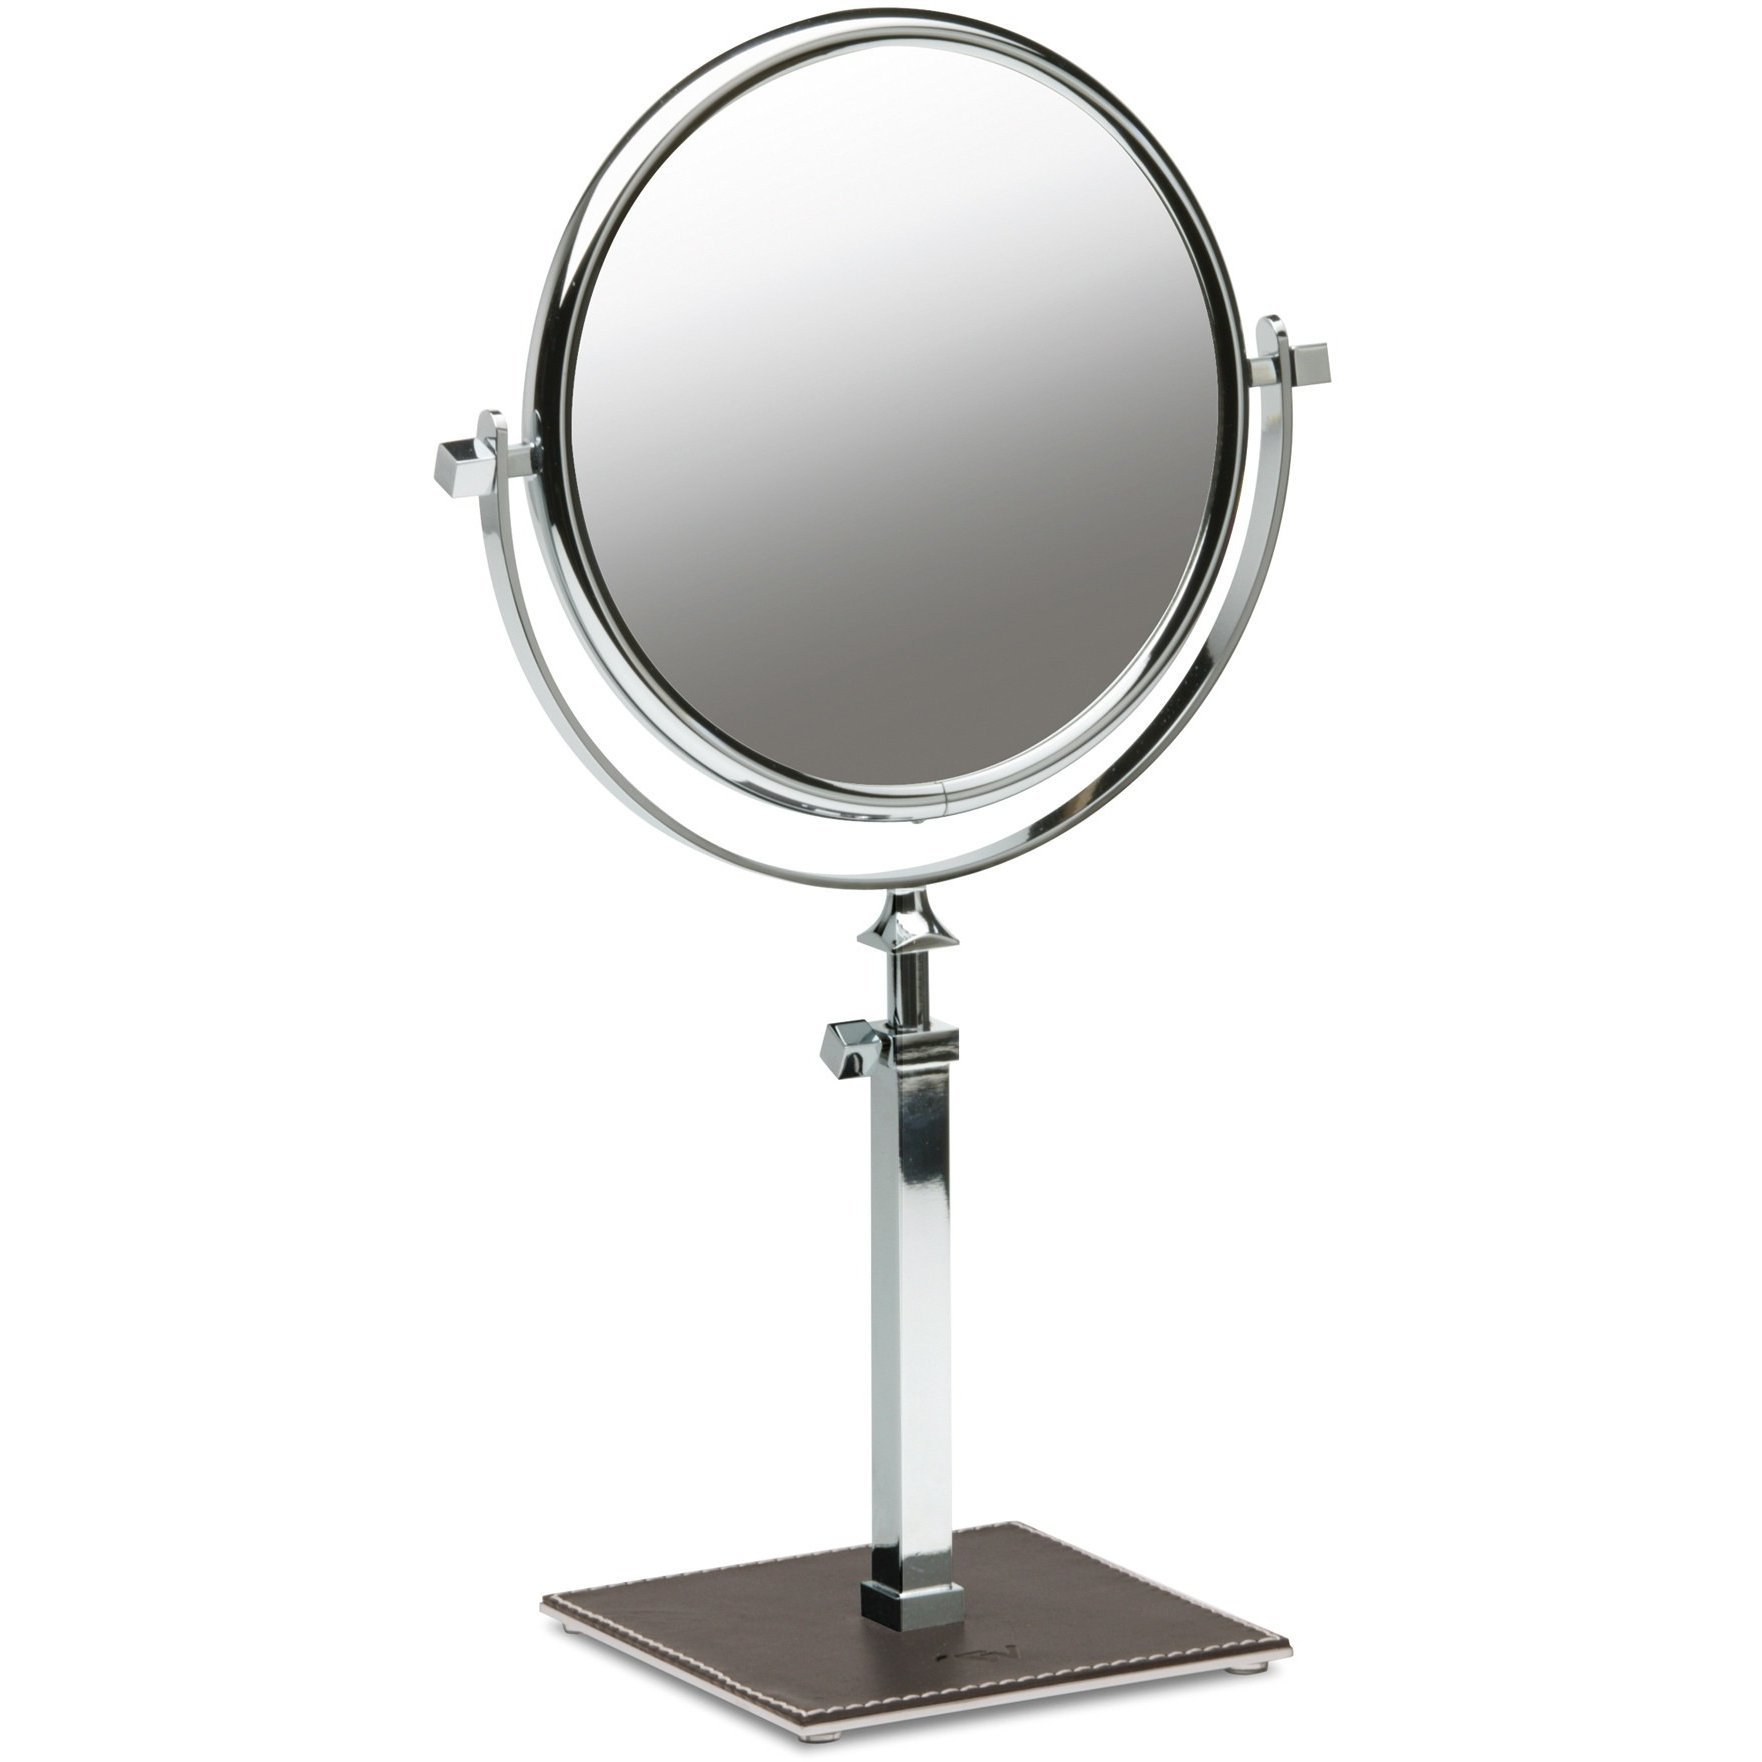 Box Kenia Table Dual Sided Cosmetic Makeup Magnifying Mirror Extendable, Leather (Brown, 5X Magnification)